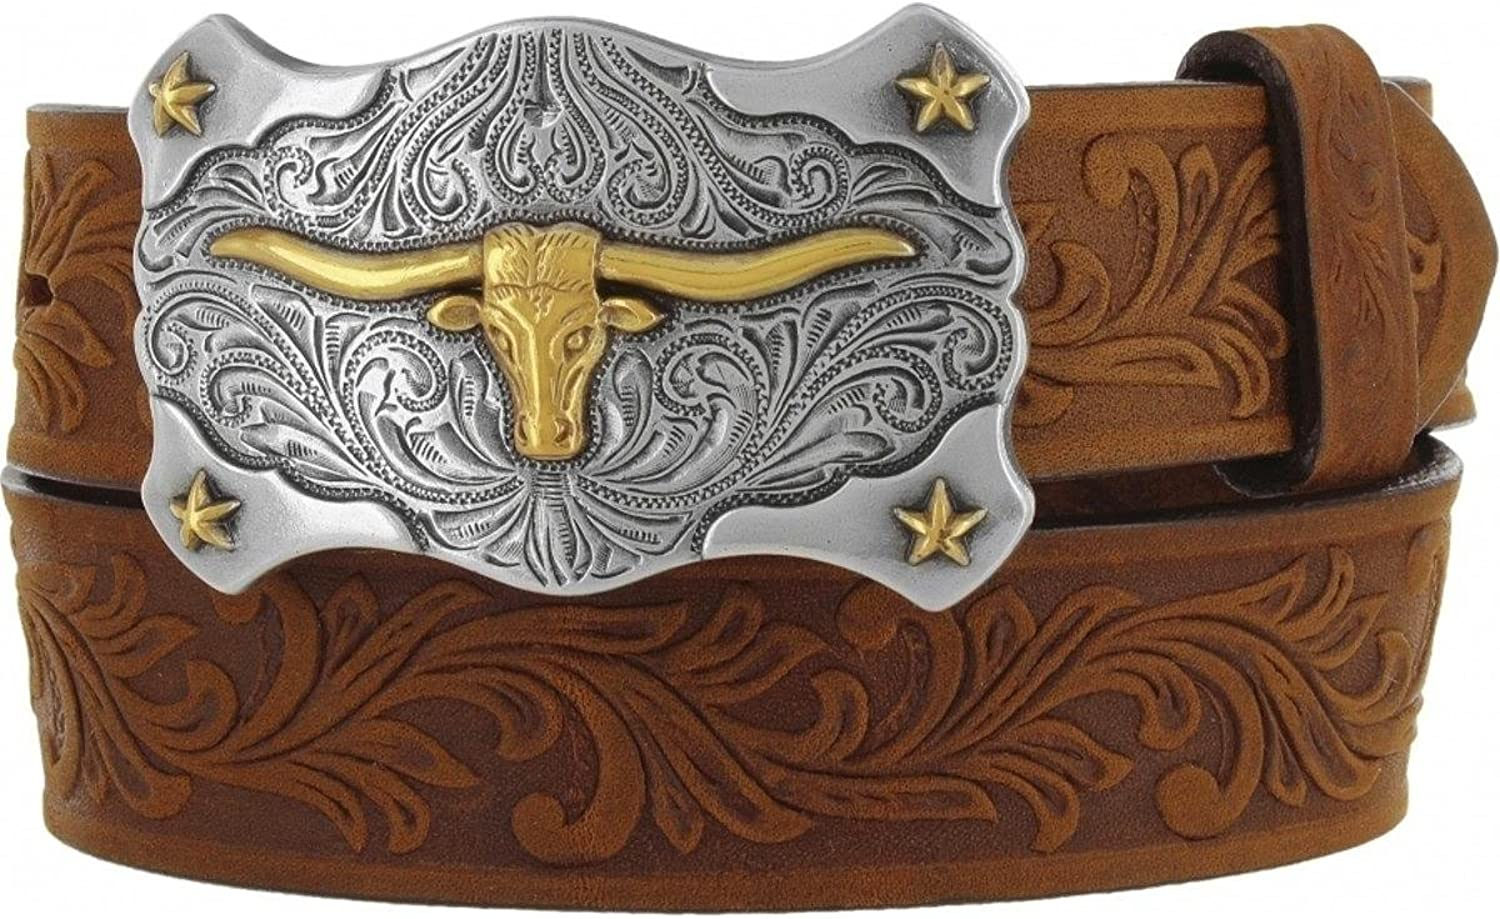 Tony Max 87% OFF Lama Boys' Little Texas OFFer Belt Buckle And Brown